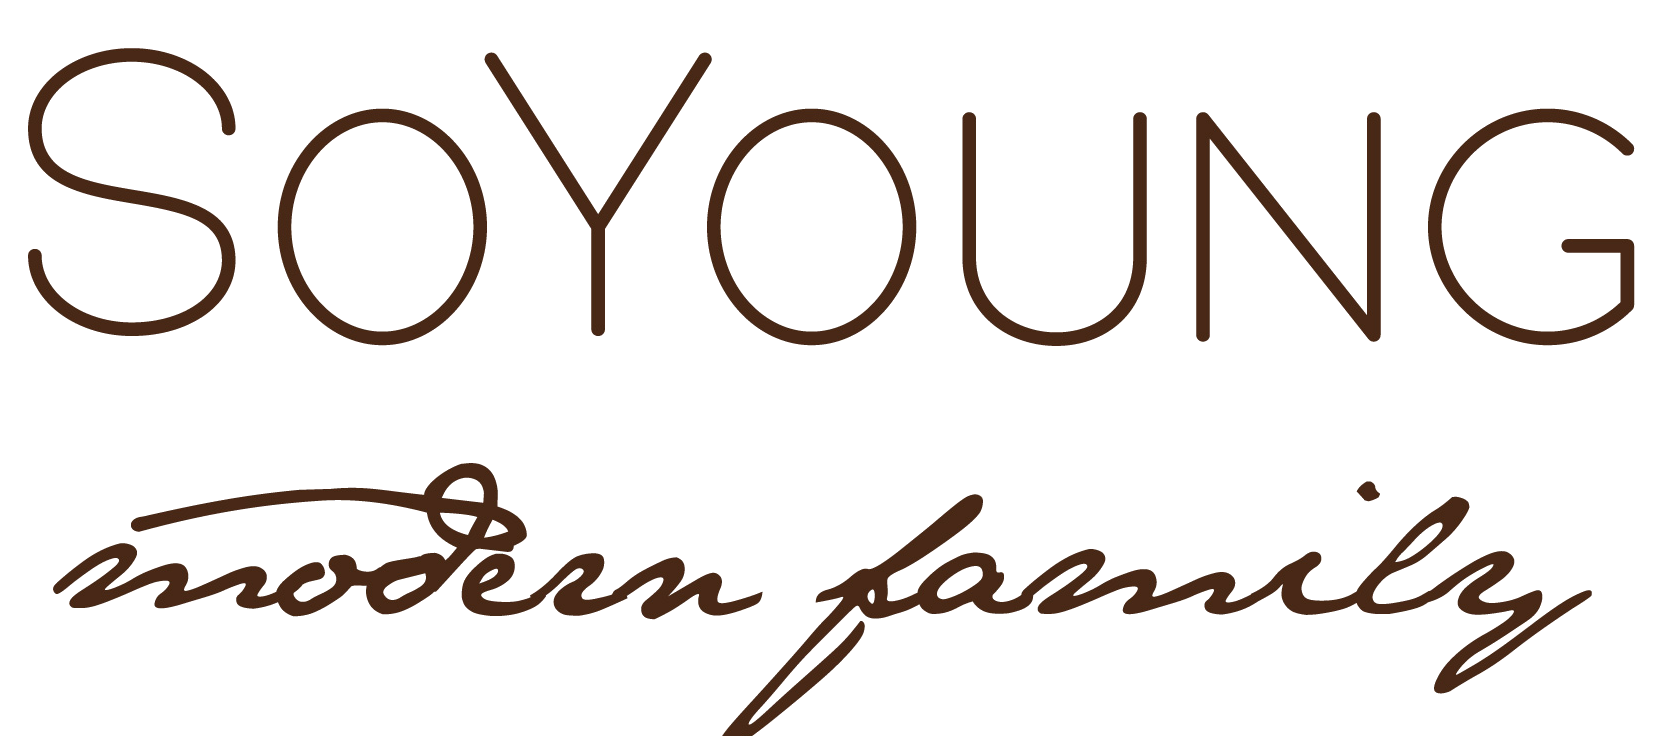 SoYoung Logo